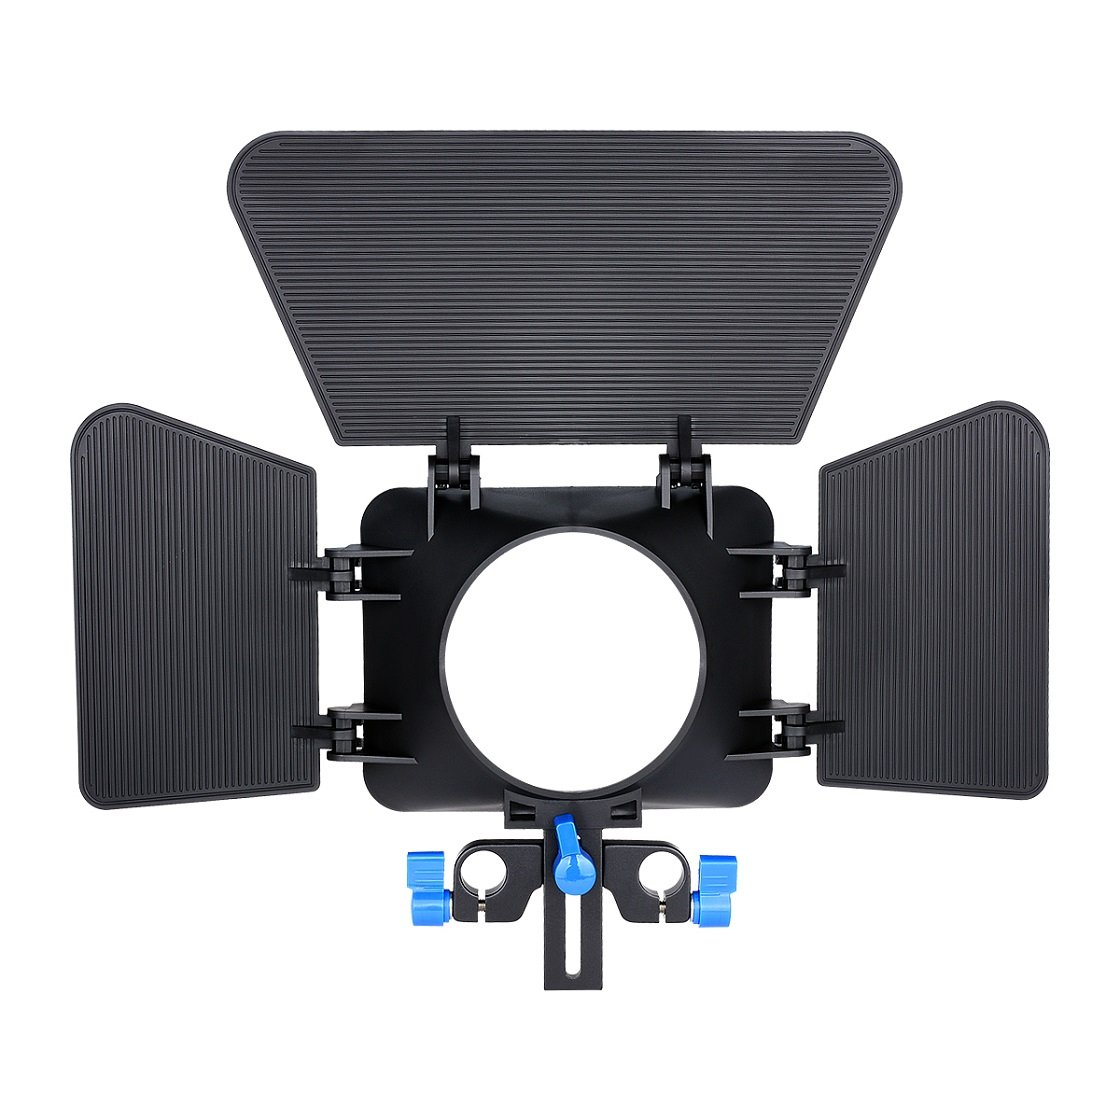 Annsm Matte Box for 15mm Standard Rail Rods for Canon Sony Panasonic Nikon Fujifilm Olympus Cameras Camcorder Lenses Diameter Less Than 85mm with Height Adjustable for Different Camera Lenses by Annsm